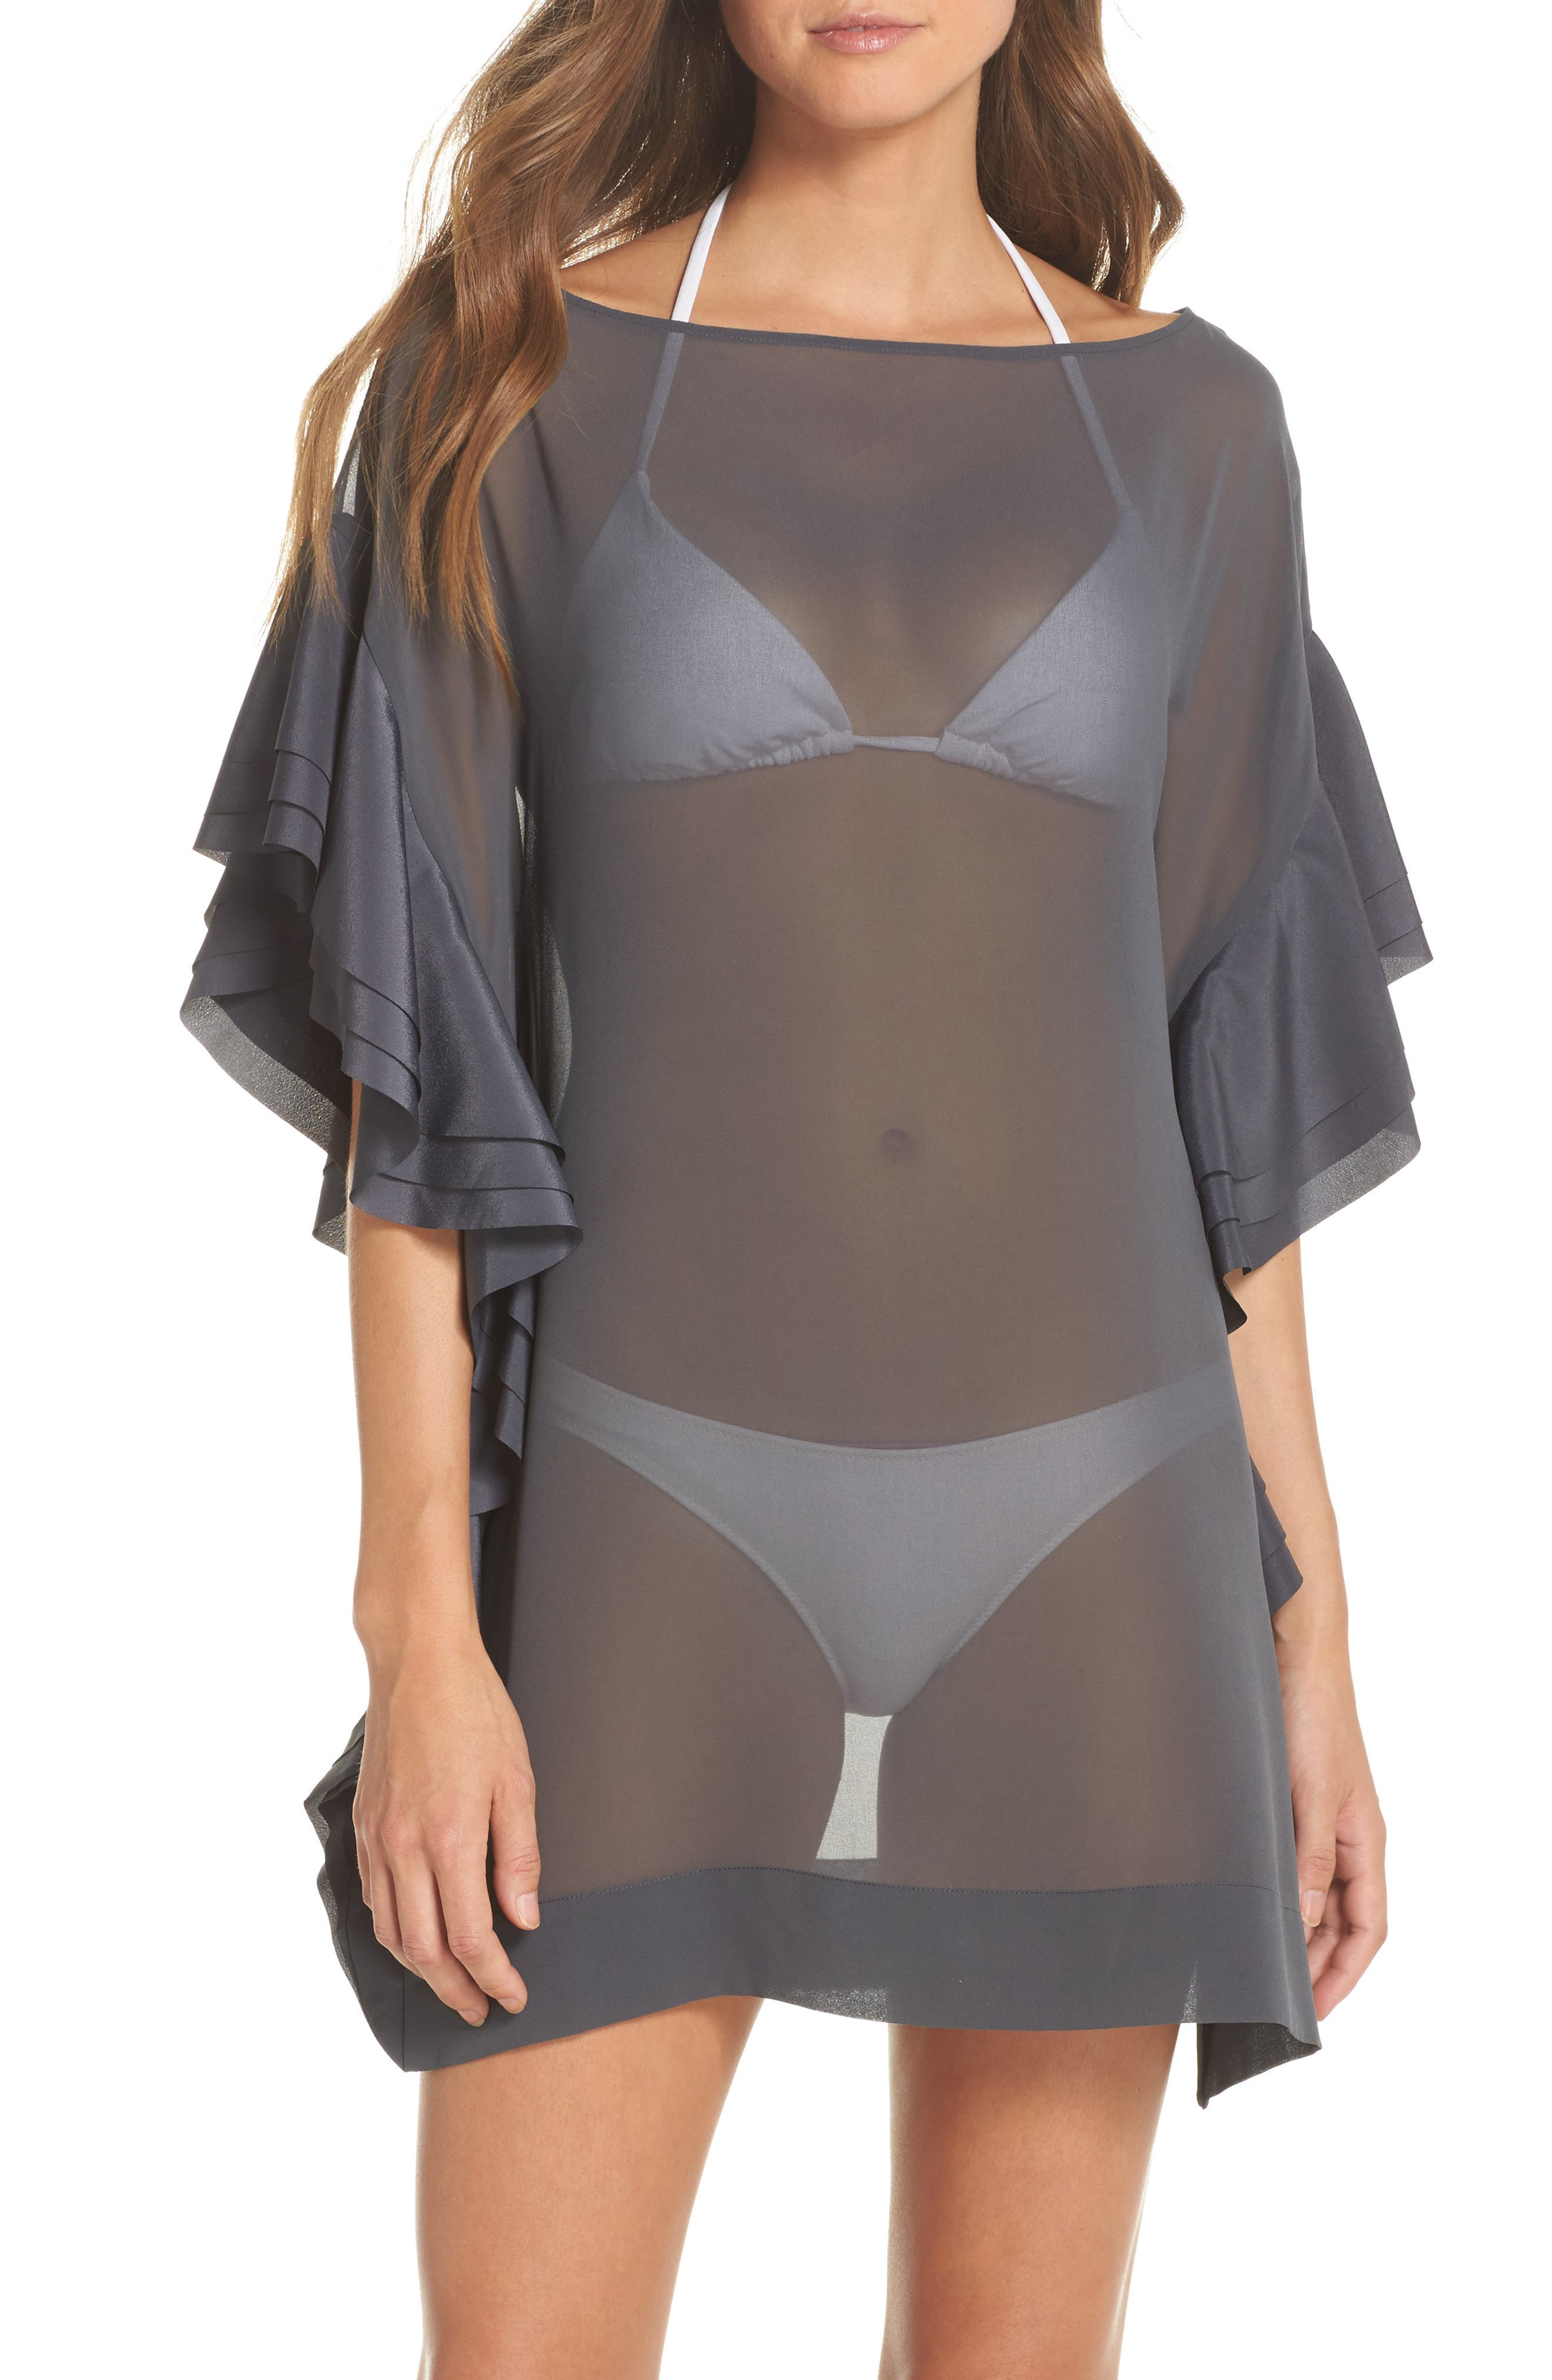 Alternate Image 1 Selected - Ted Baker London Ruffle Square Cover-Up Dress